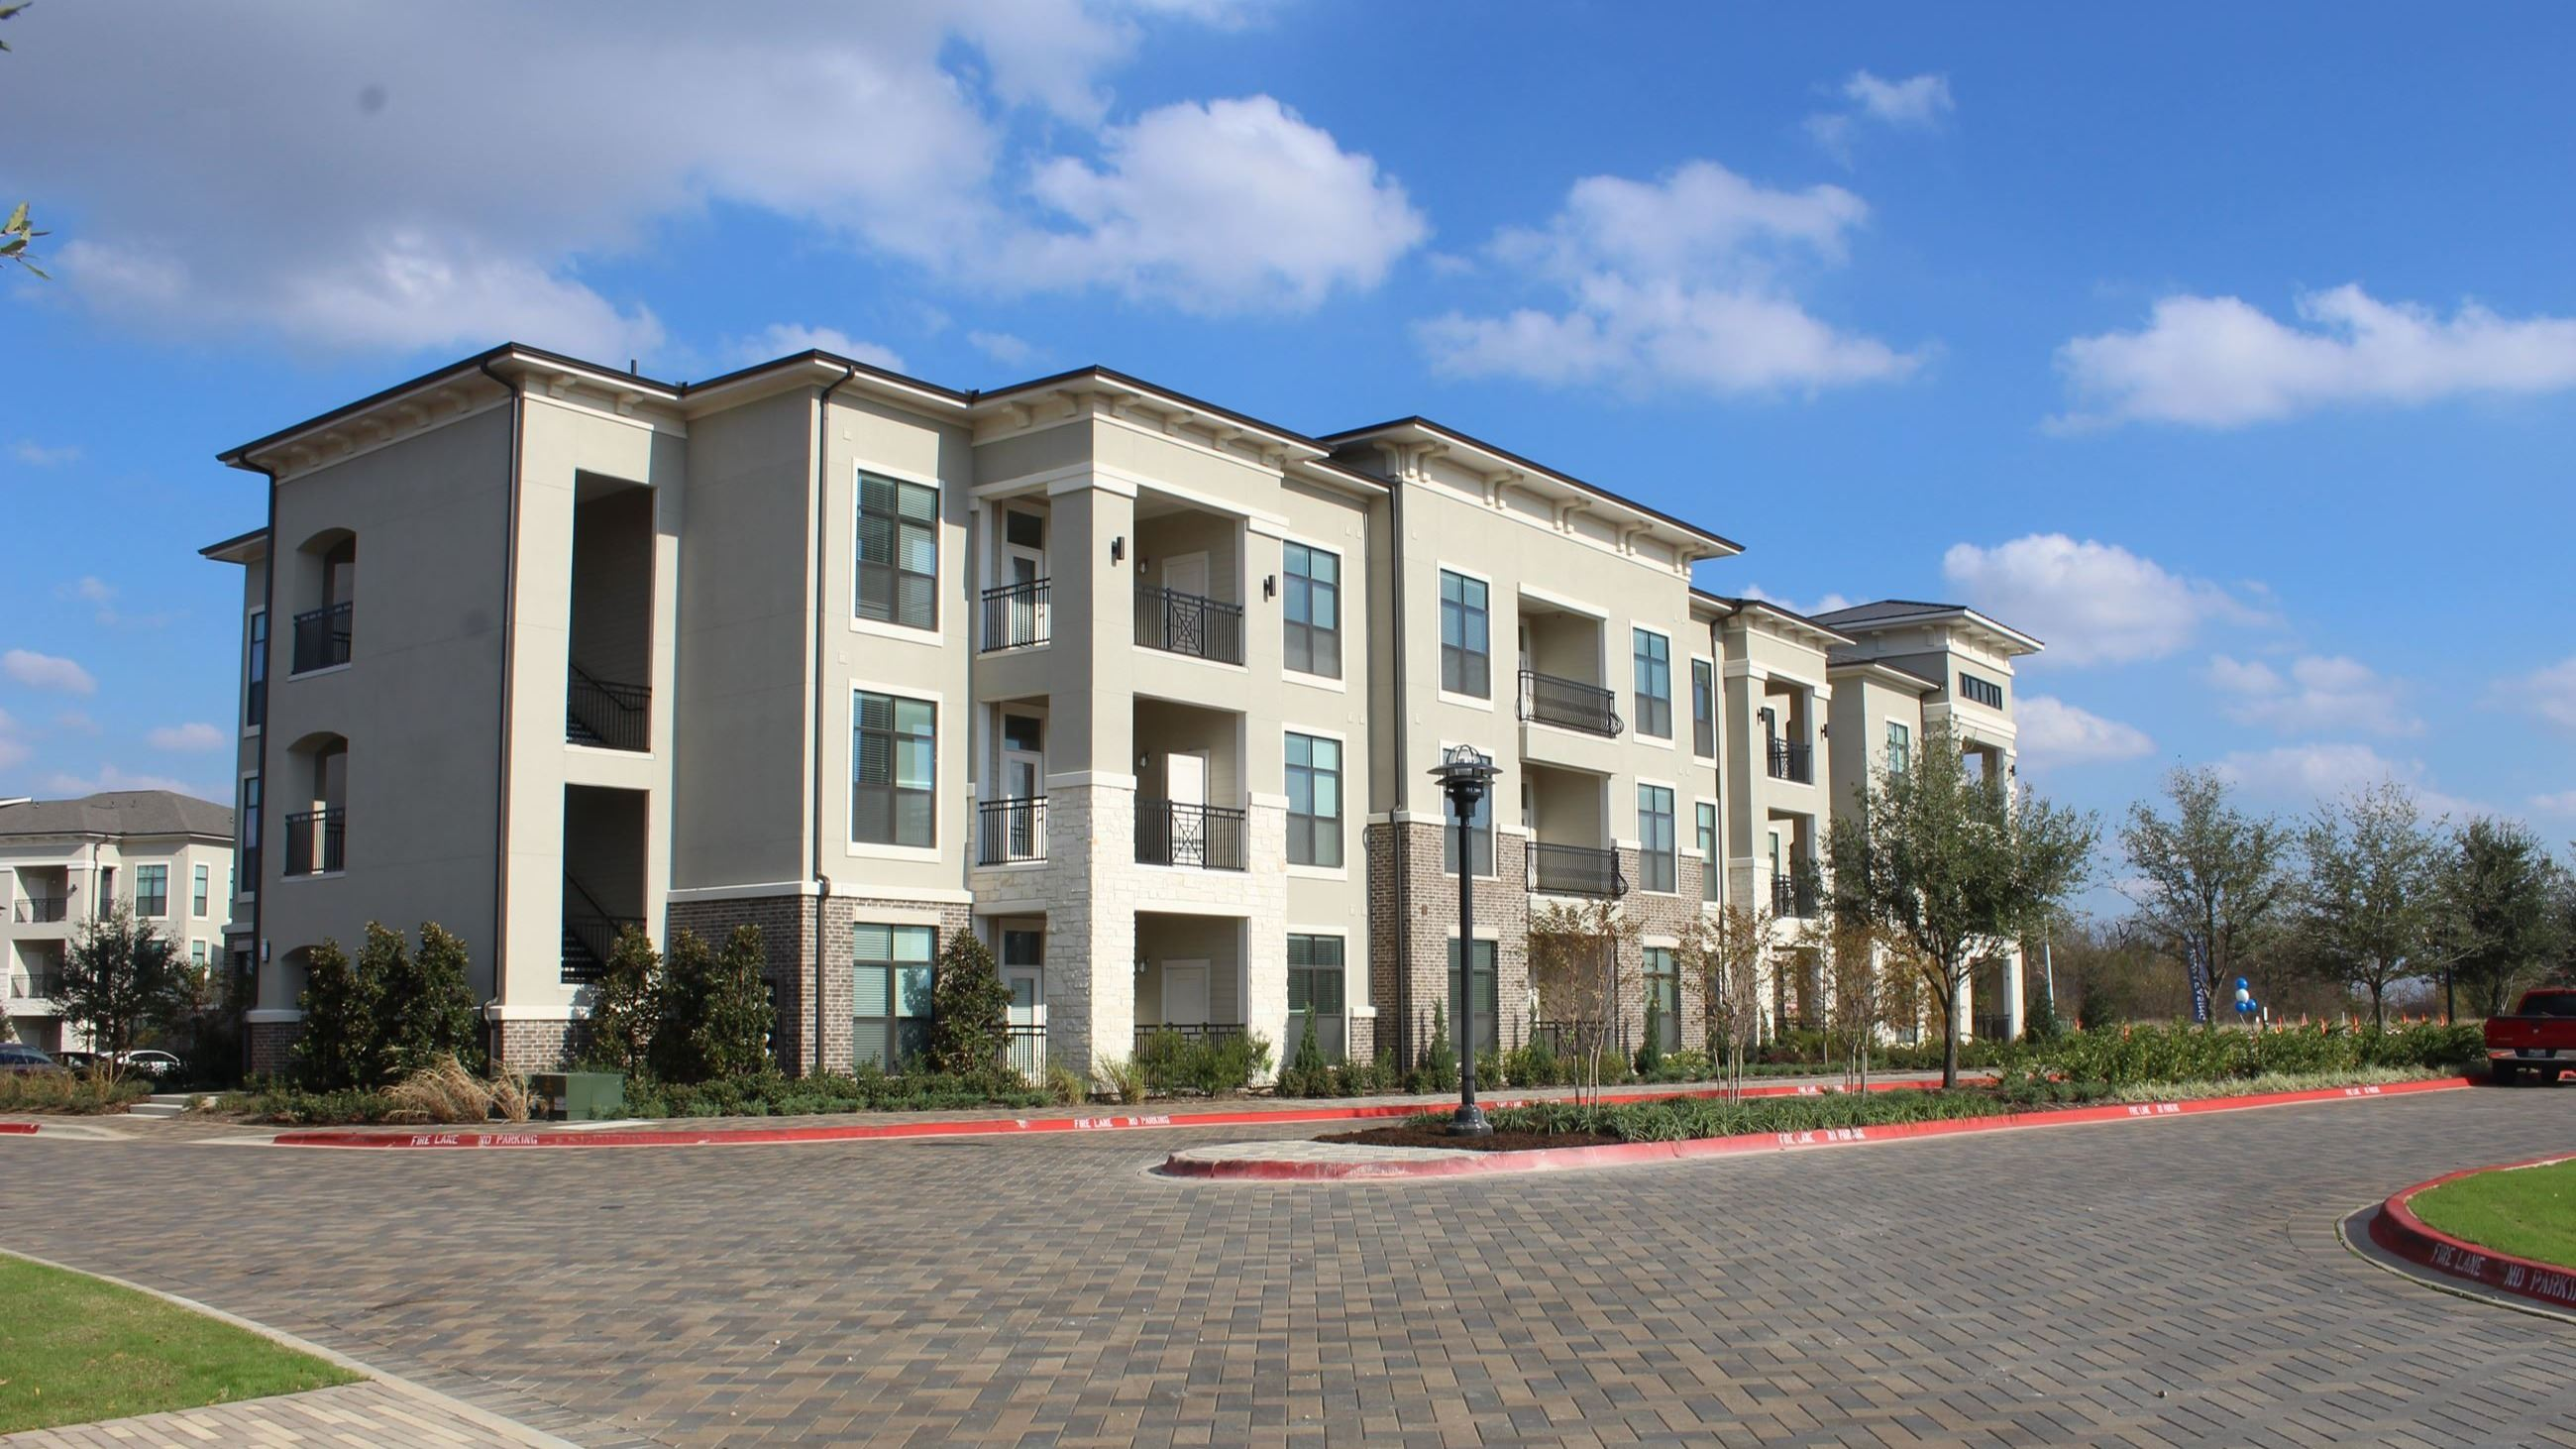 Apartment building in Garland